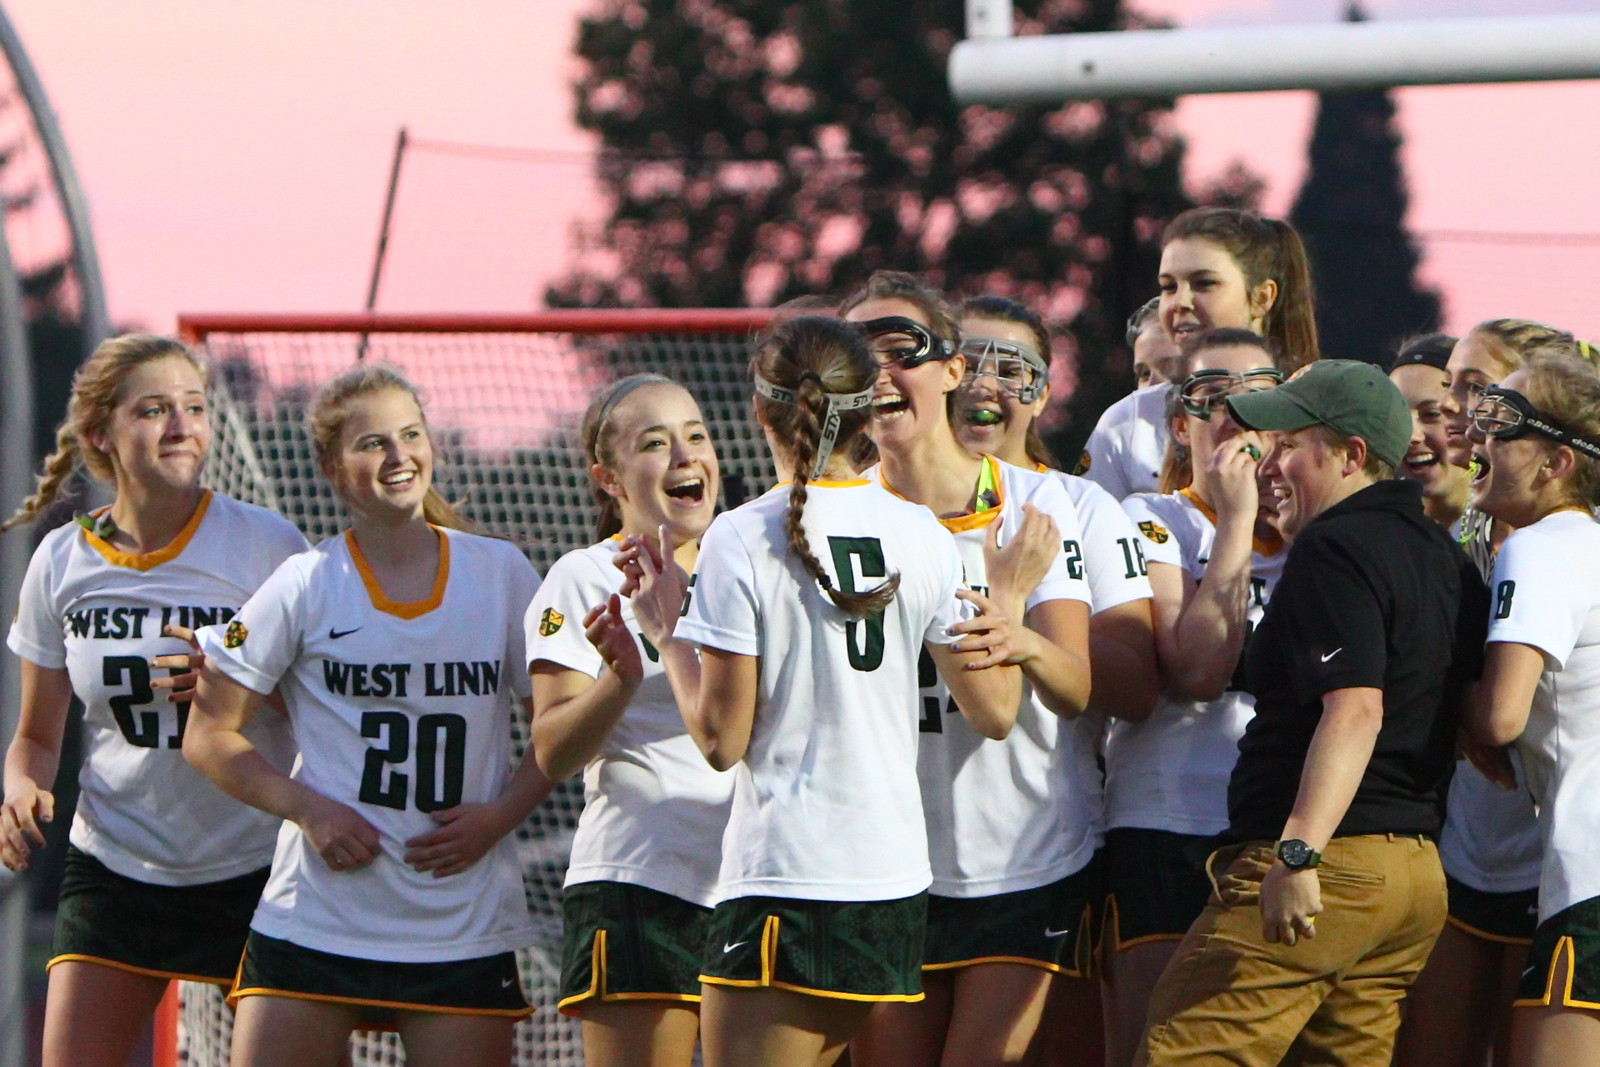 West Linn wins state championship and tops the rankings in Oregon. (Photo: Richard Calderwood)